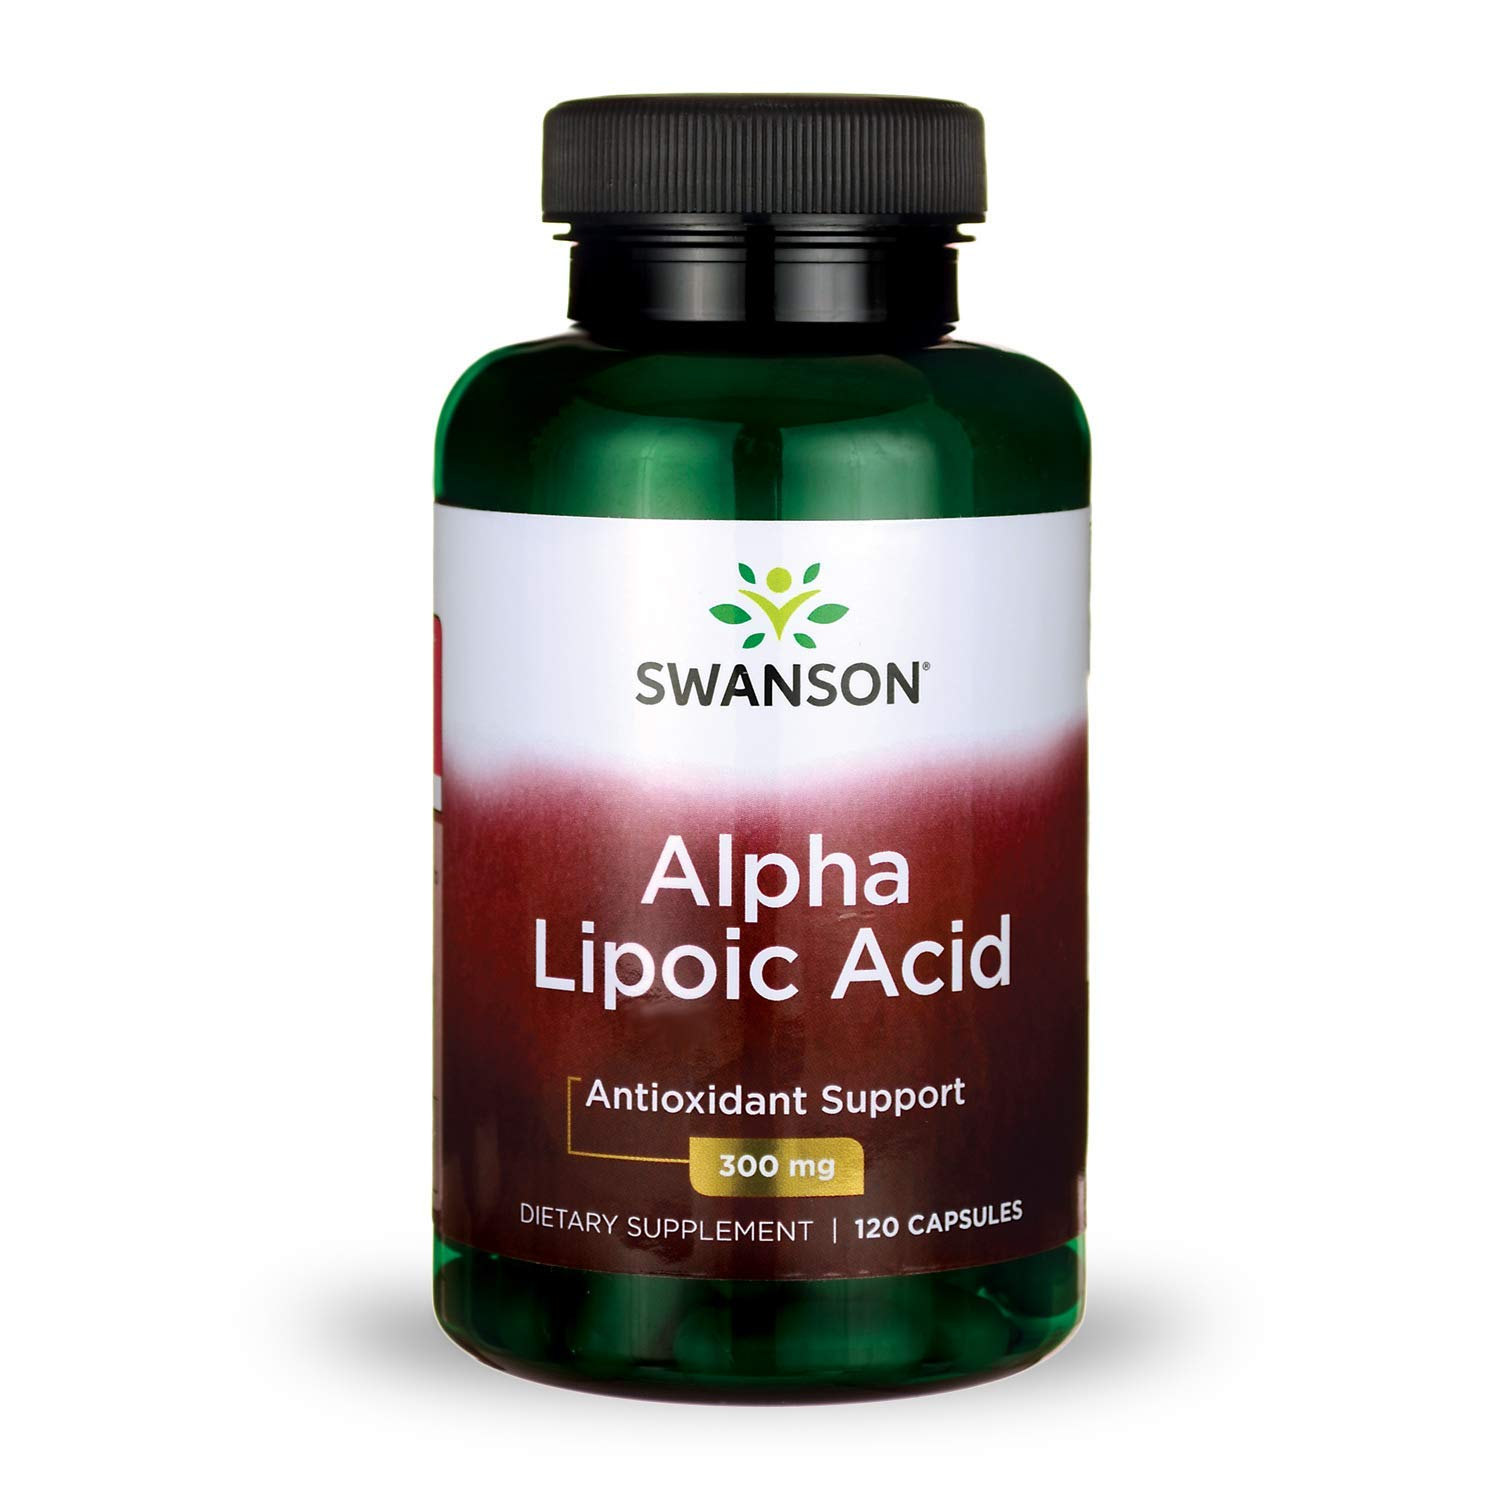 Alpha Lipoic Acid Antioxidant Protection Promotes Healthy Blood Sugar Supplement 300 mg 120 Capsules